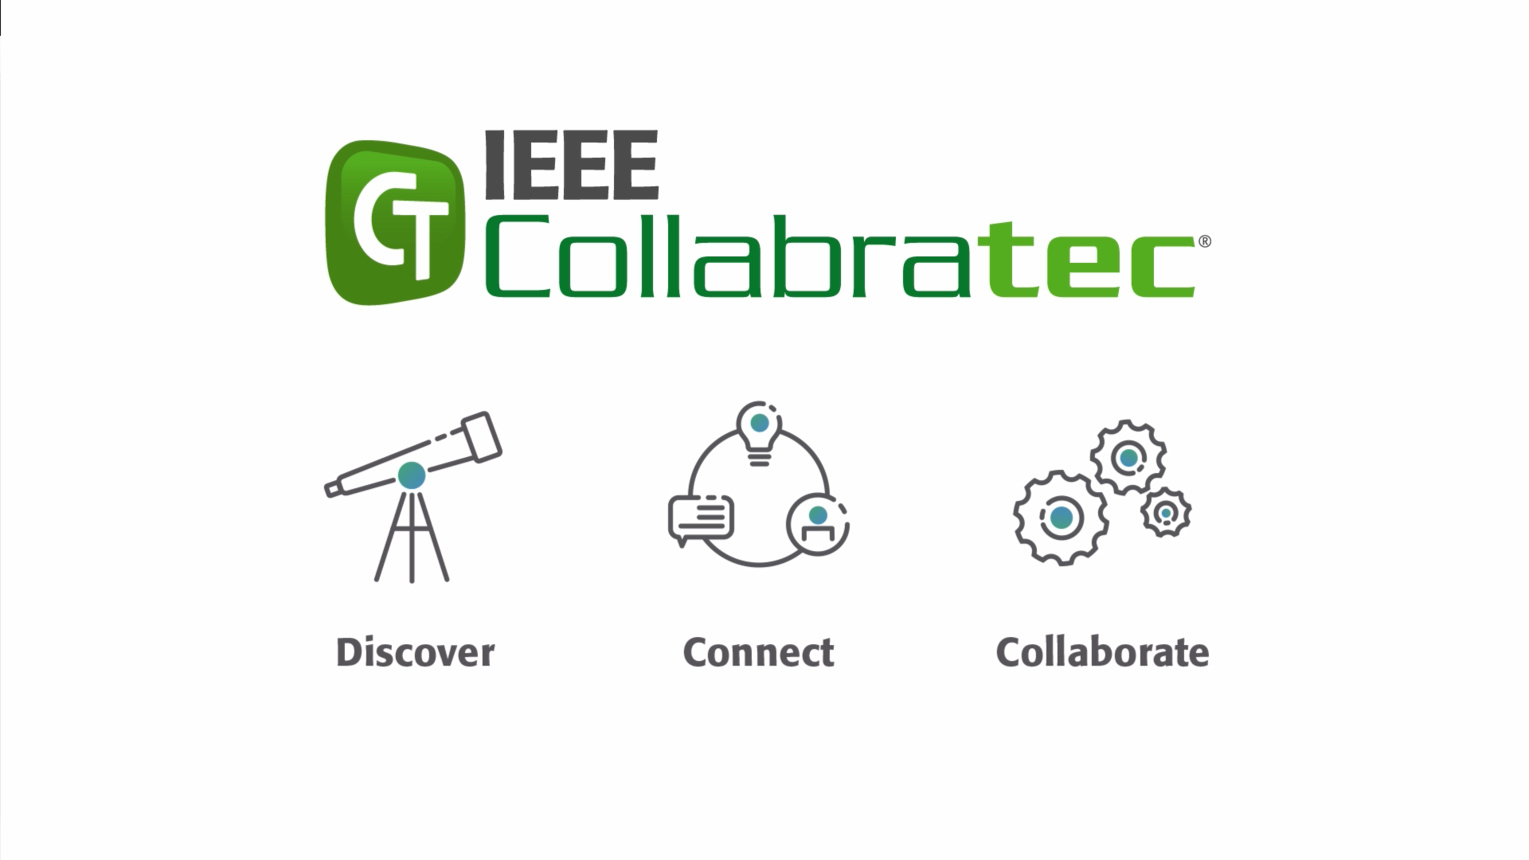 2020 Intro and Use Cases: IEEE Collabratec